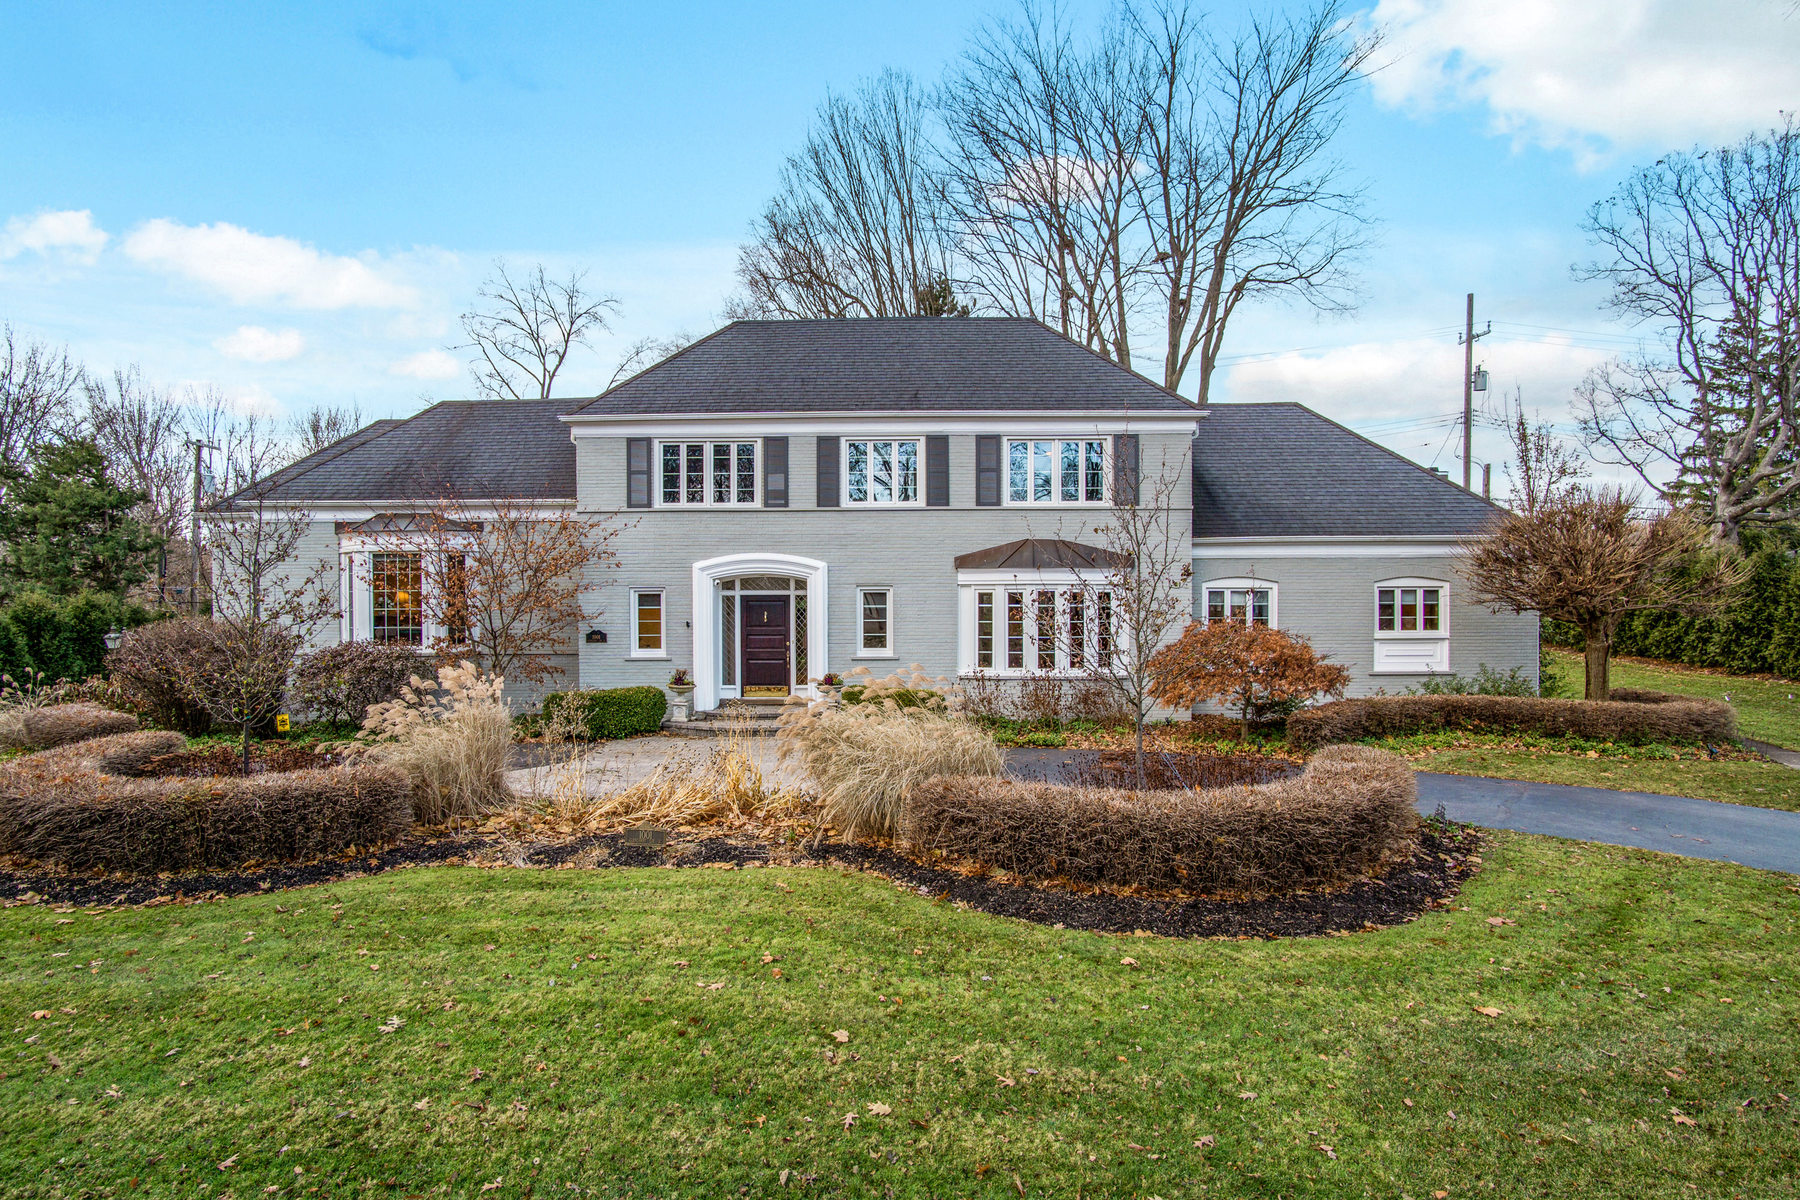 Single Family Homes for Active at Bloomfield Hills 1001 W Glengarry Circle Bloomfield Hills, Michigan 48301 United States